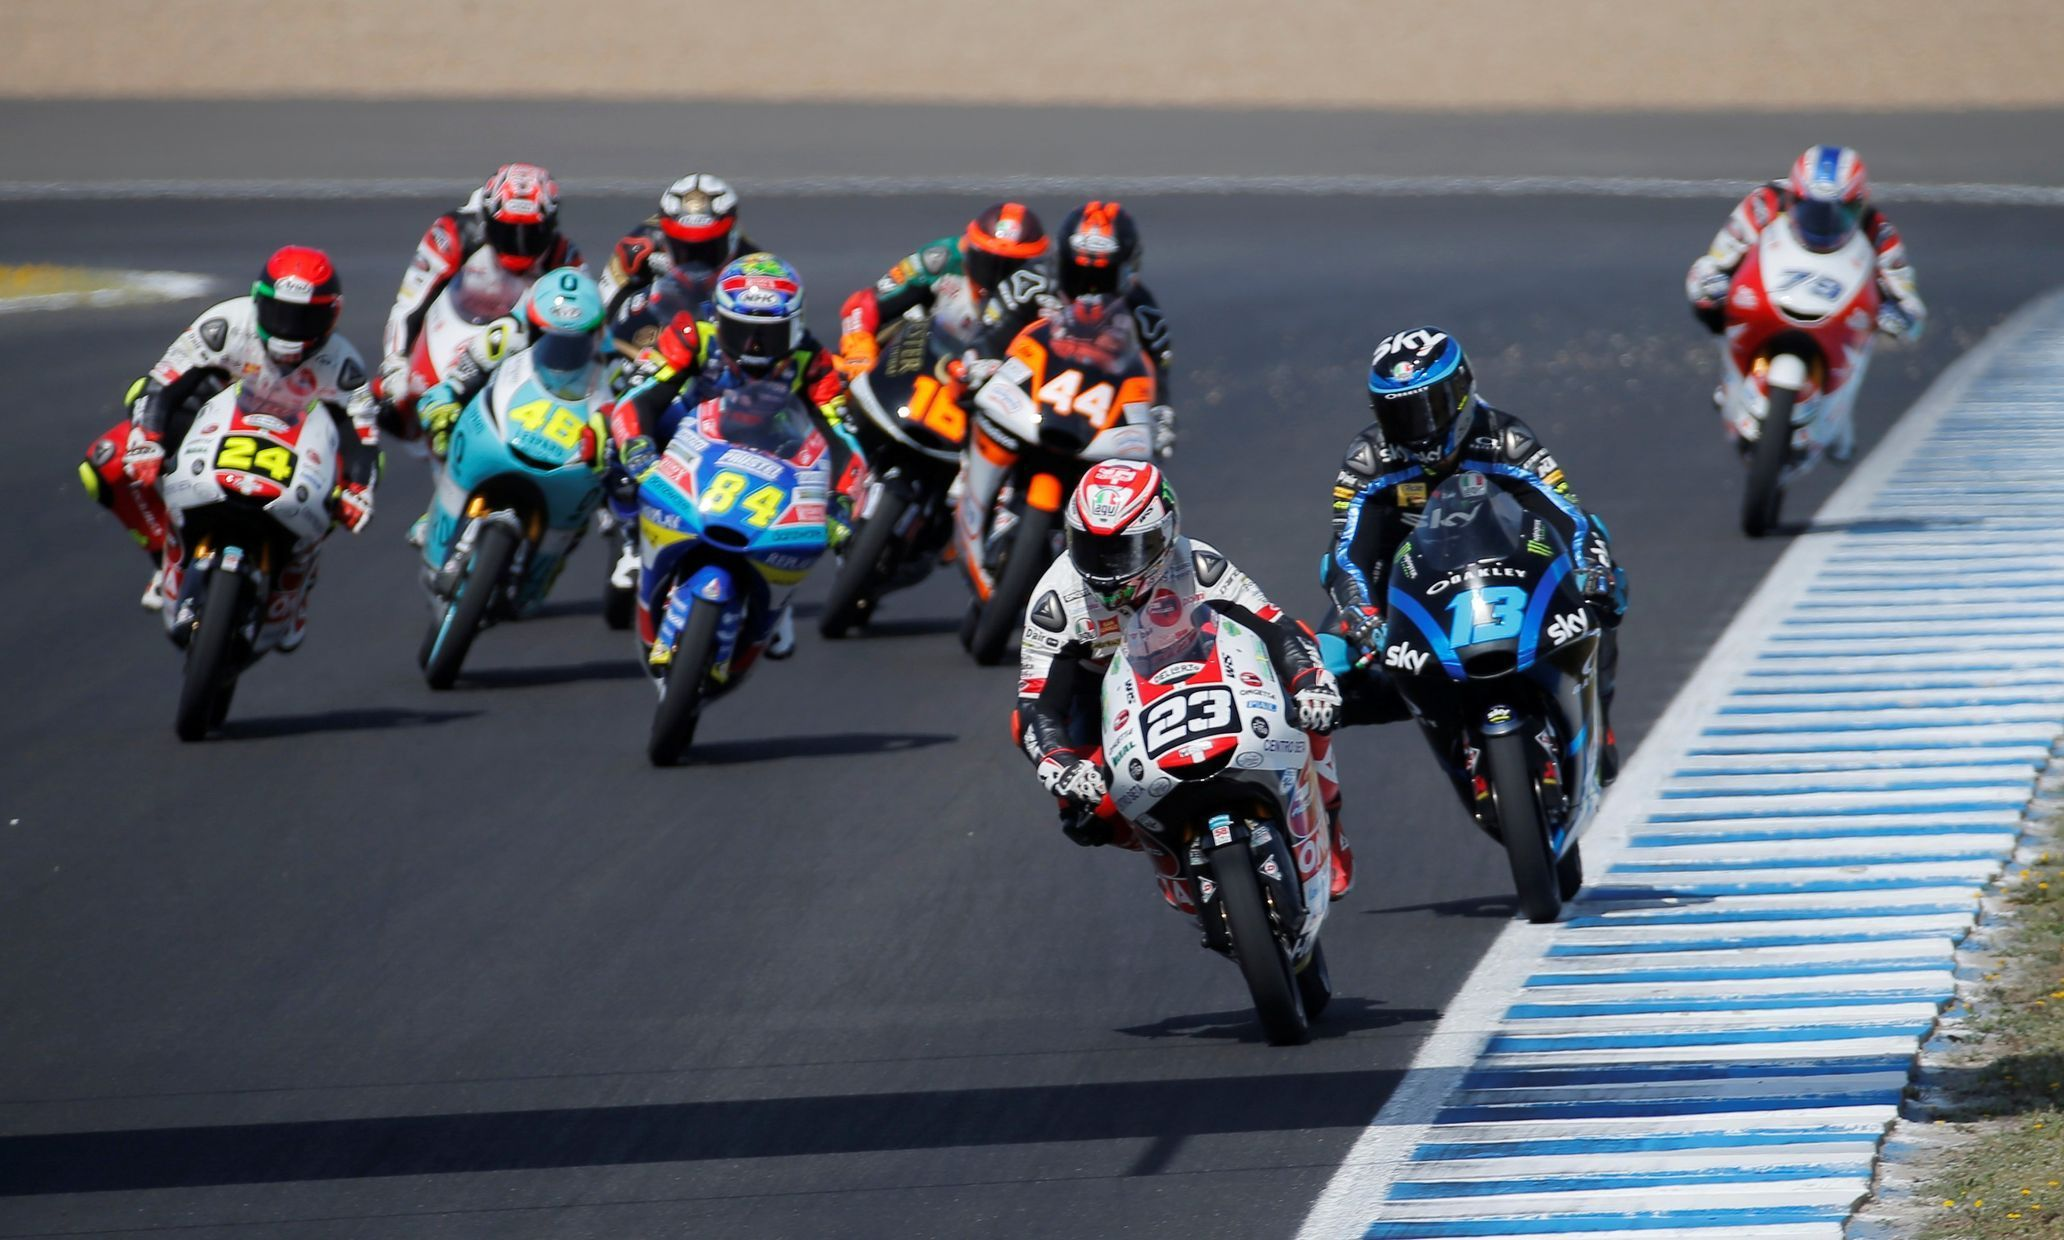 MotoGP - Spanish Grand Prix